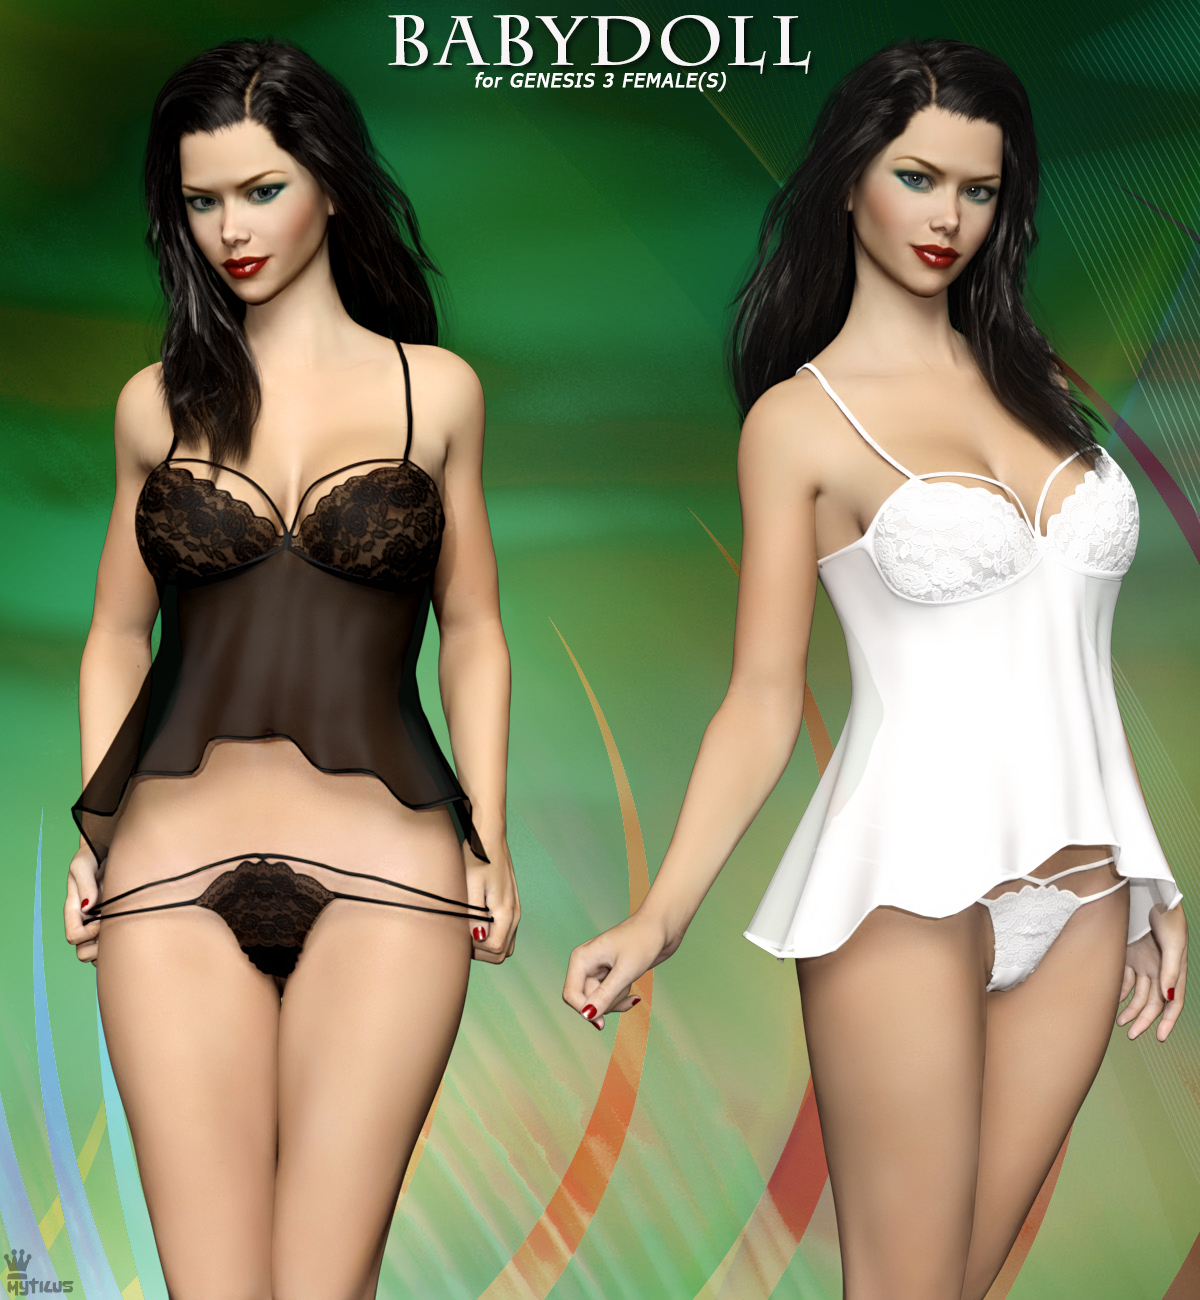 9197aa0322087 Babydoll For Genesis 3 Female(s). Warning! Content Advisory: Some images  may contain content not suitable for all viewers